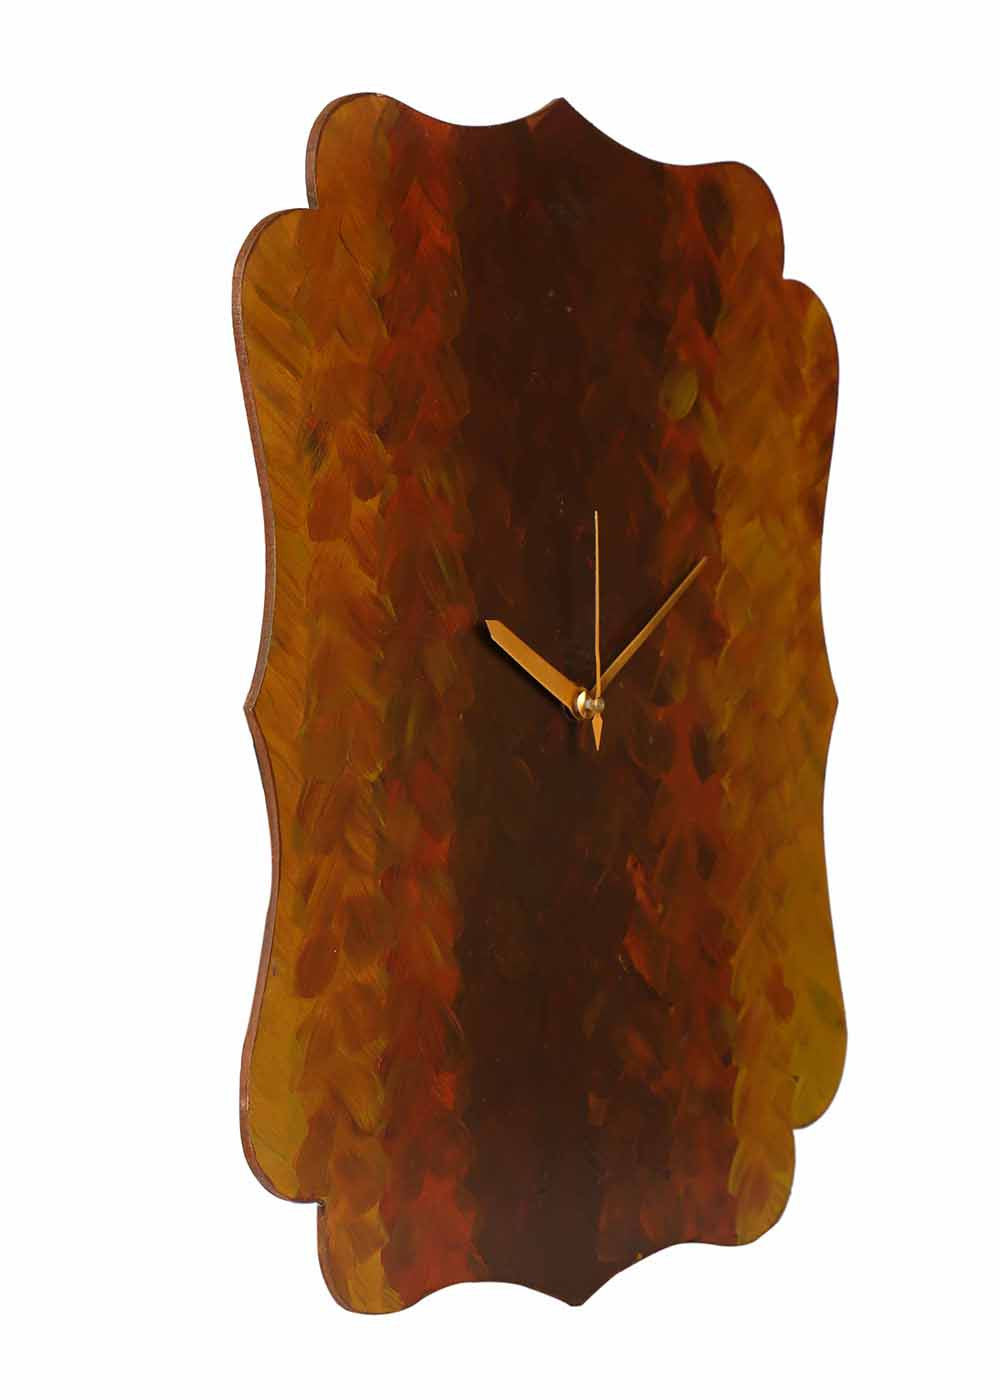 The Sunkissed Earth Wall Clock - RANGRAGE